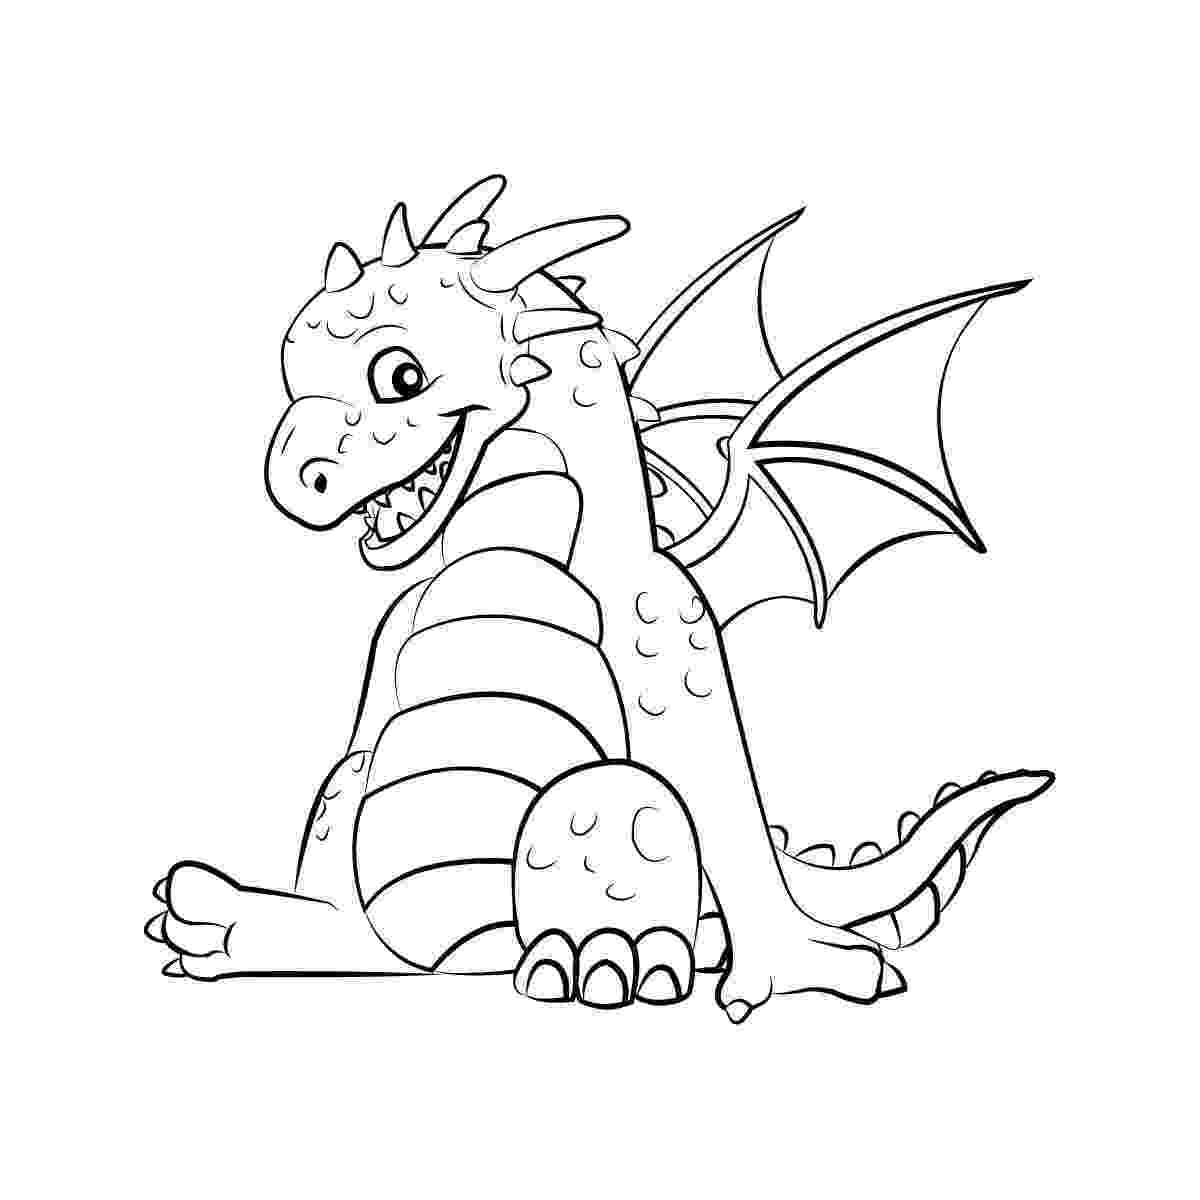 dragon color sheets how to draw a white dragon white dragon step by step sheets dragon color